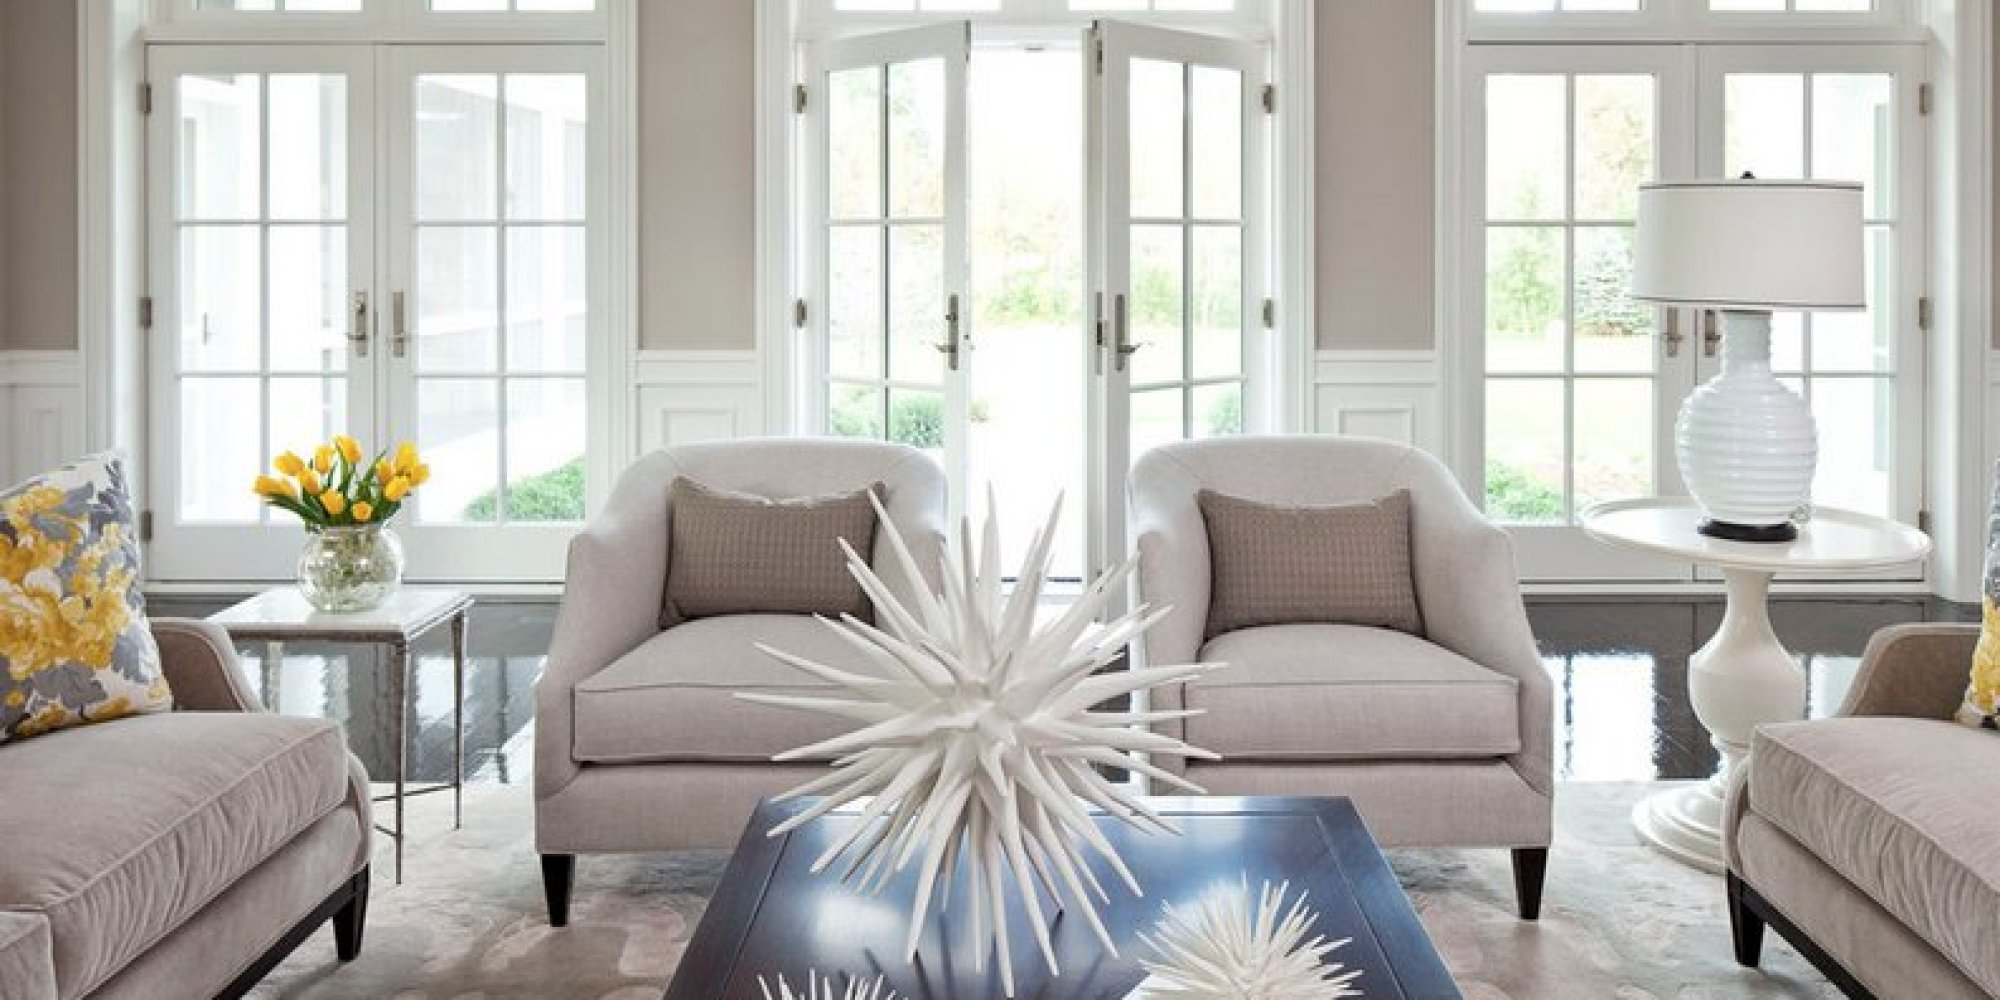 the 8 best neutral paint colors thatll work in any home no matter the style photos huffpost - Grey Interior Paint Schemes